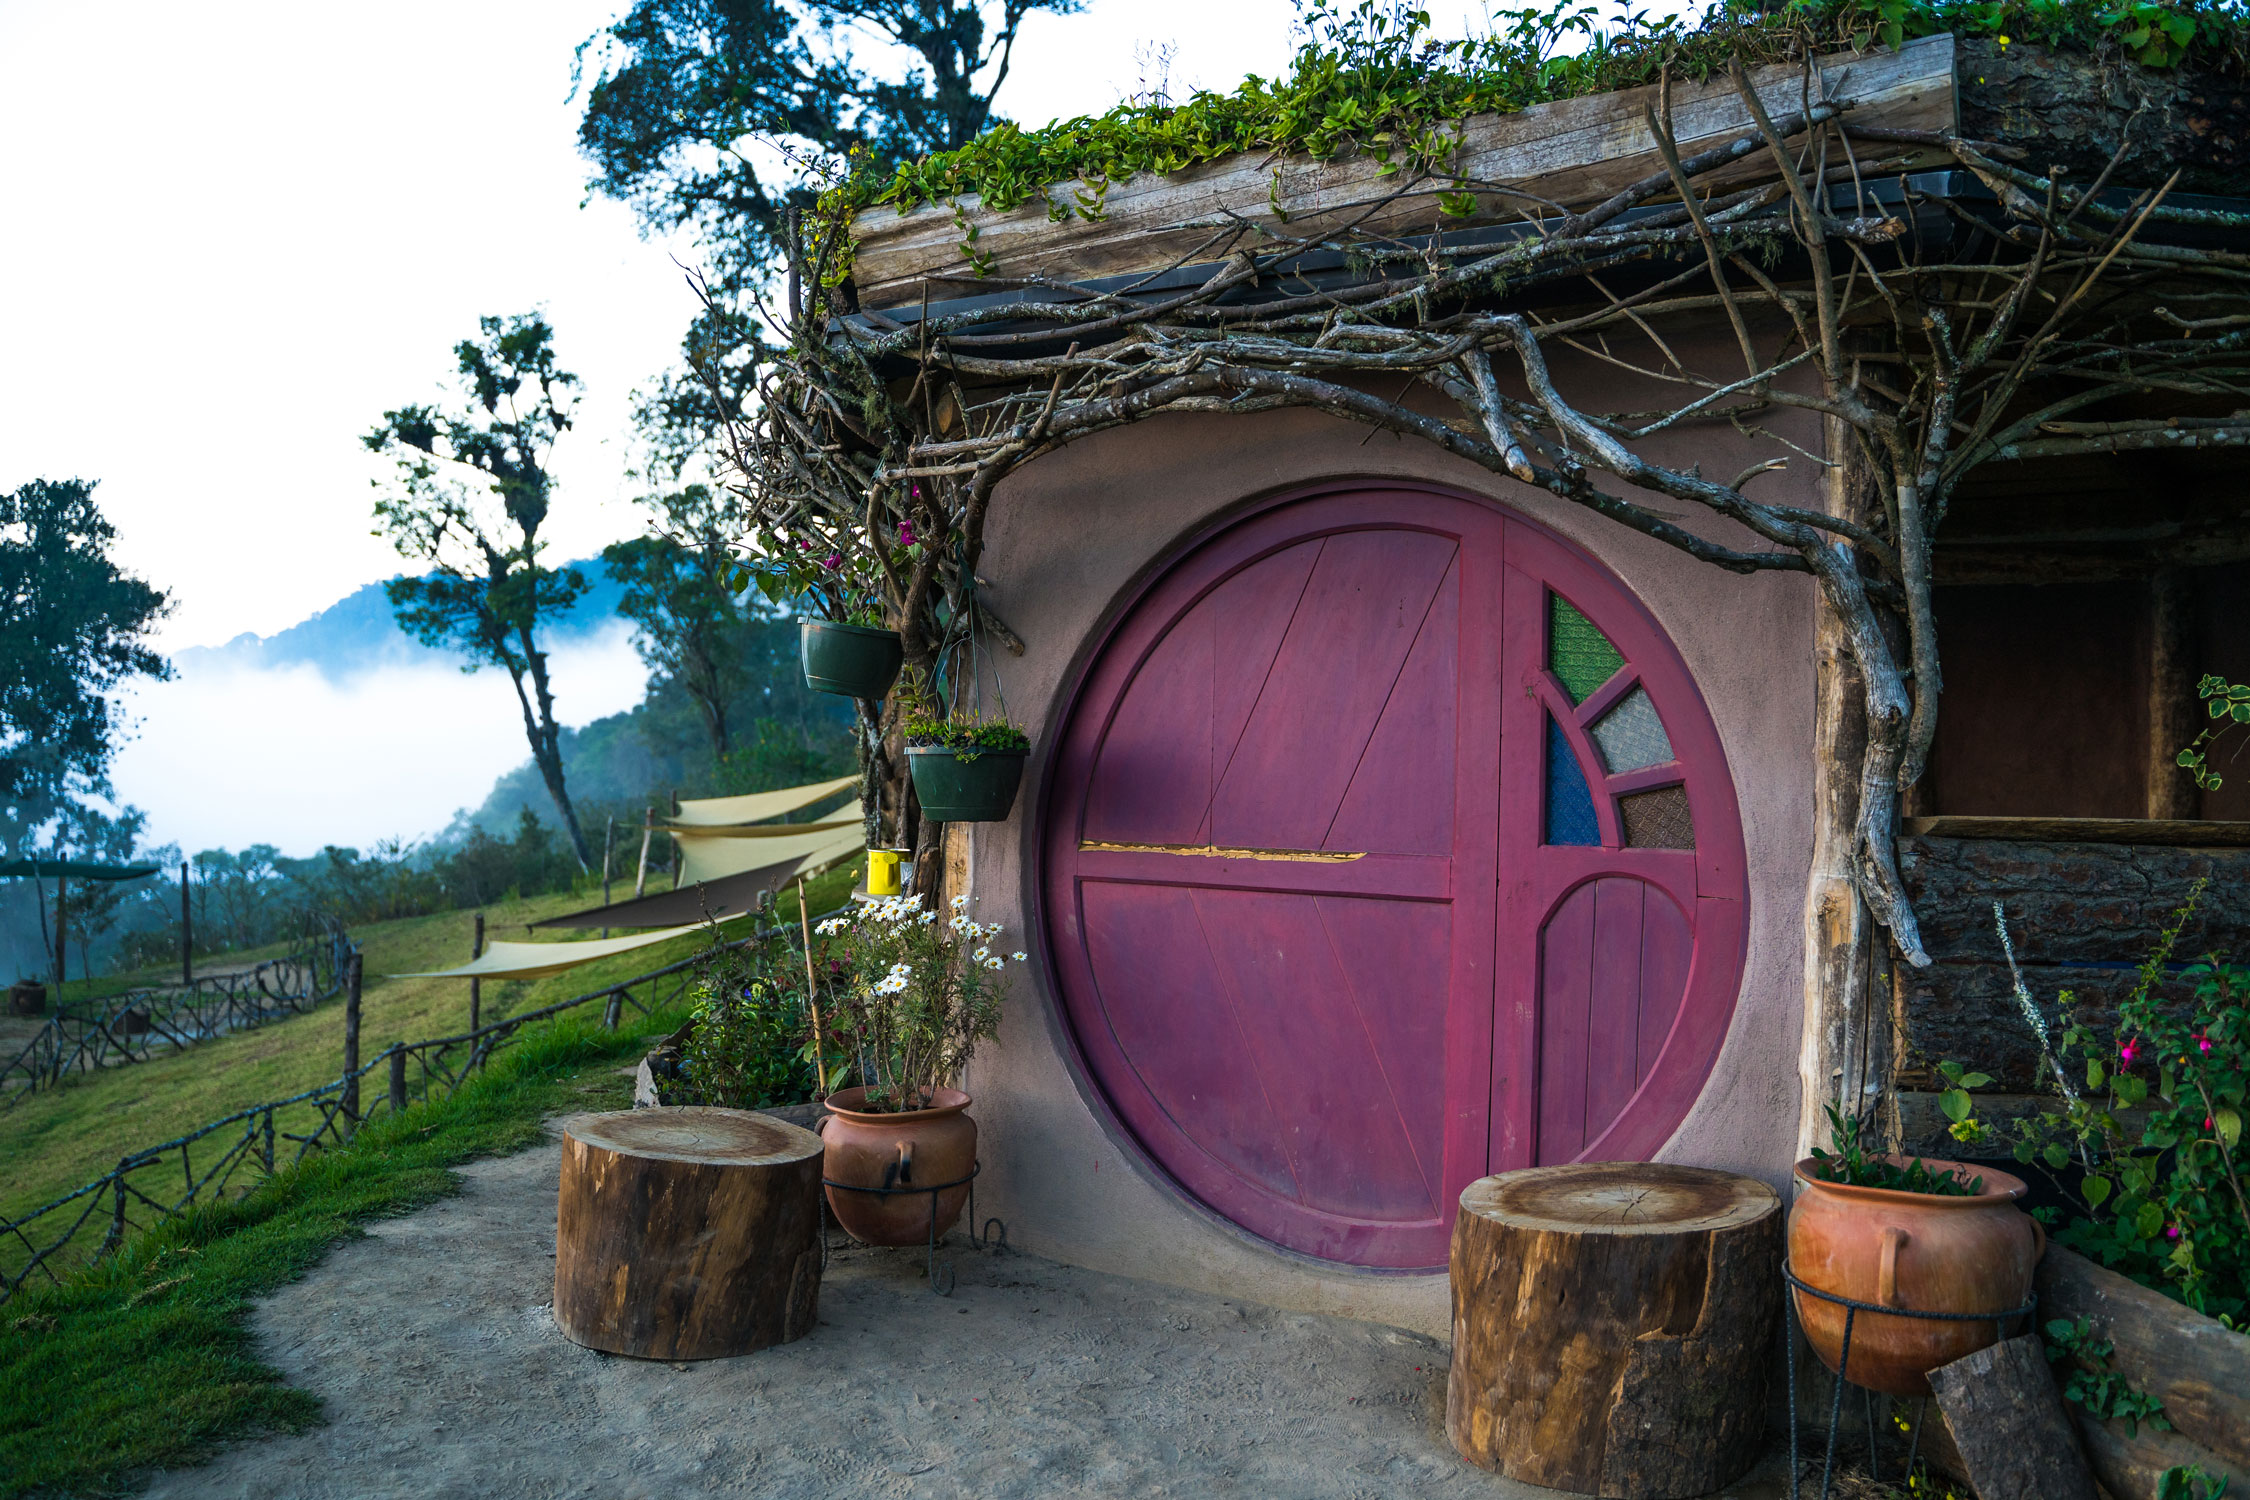 Hobbitenango is one of the top things to do in Guatemala. Discover more Guatemala attractions and why you should visit Guatemala from this Guatemala travel blog.